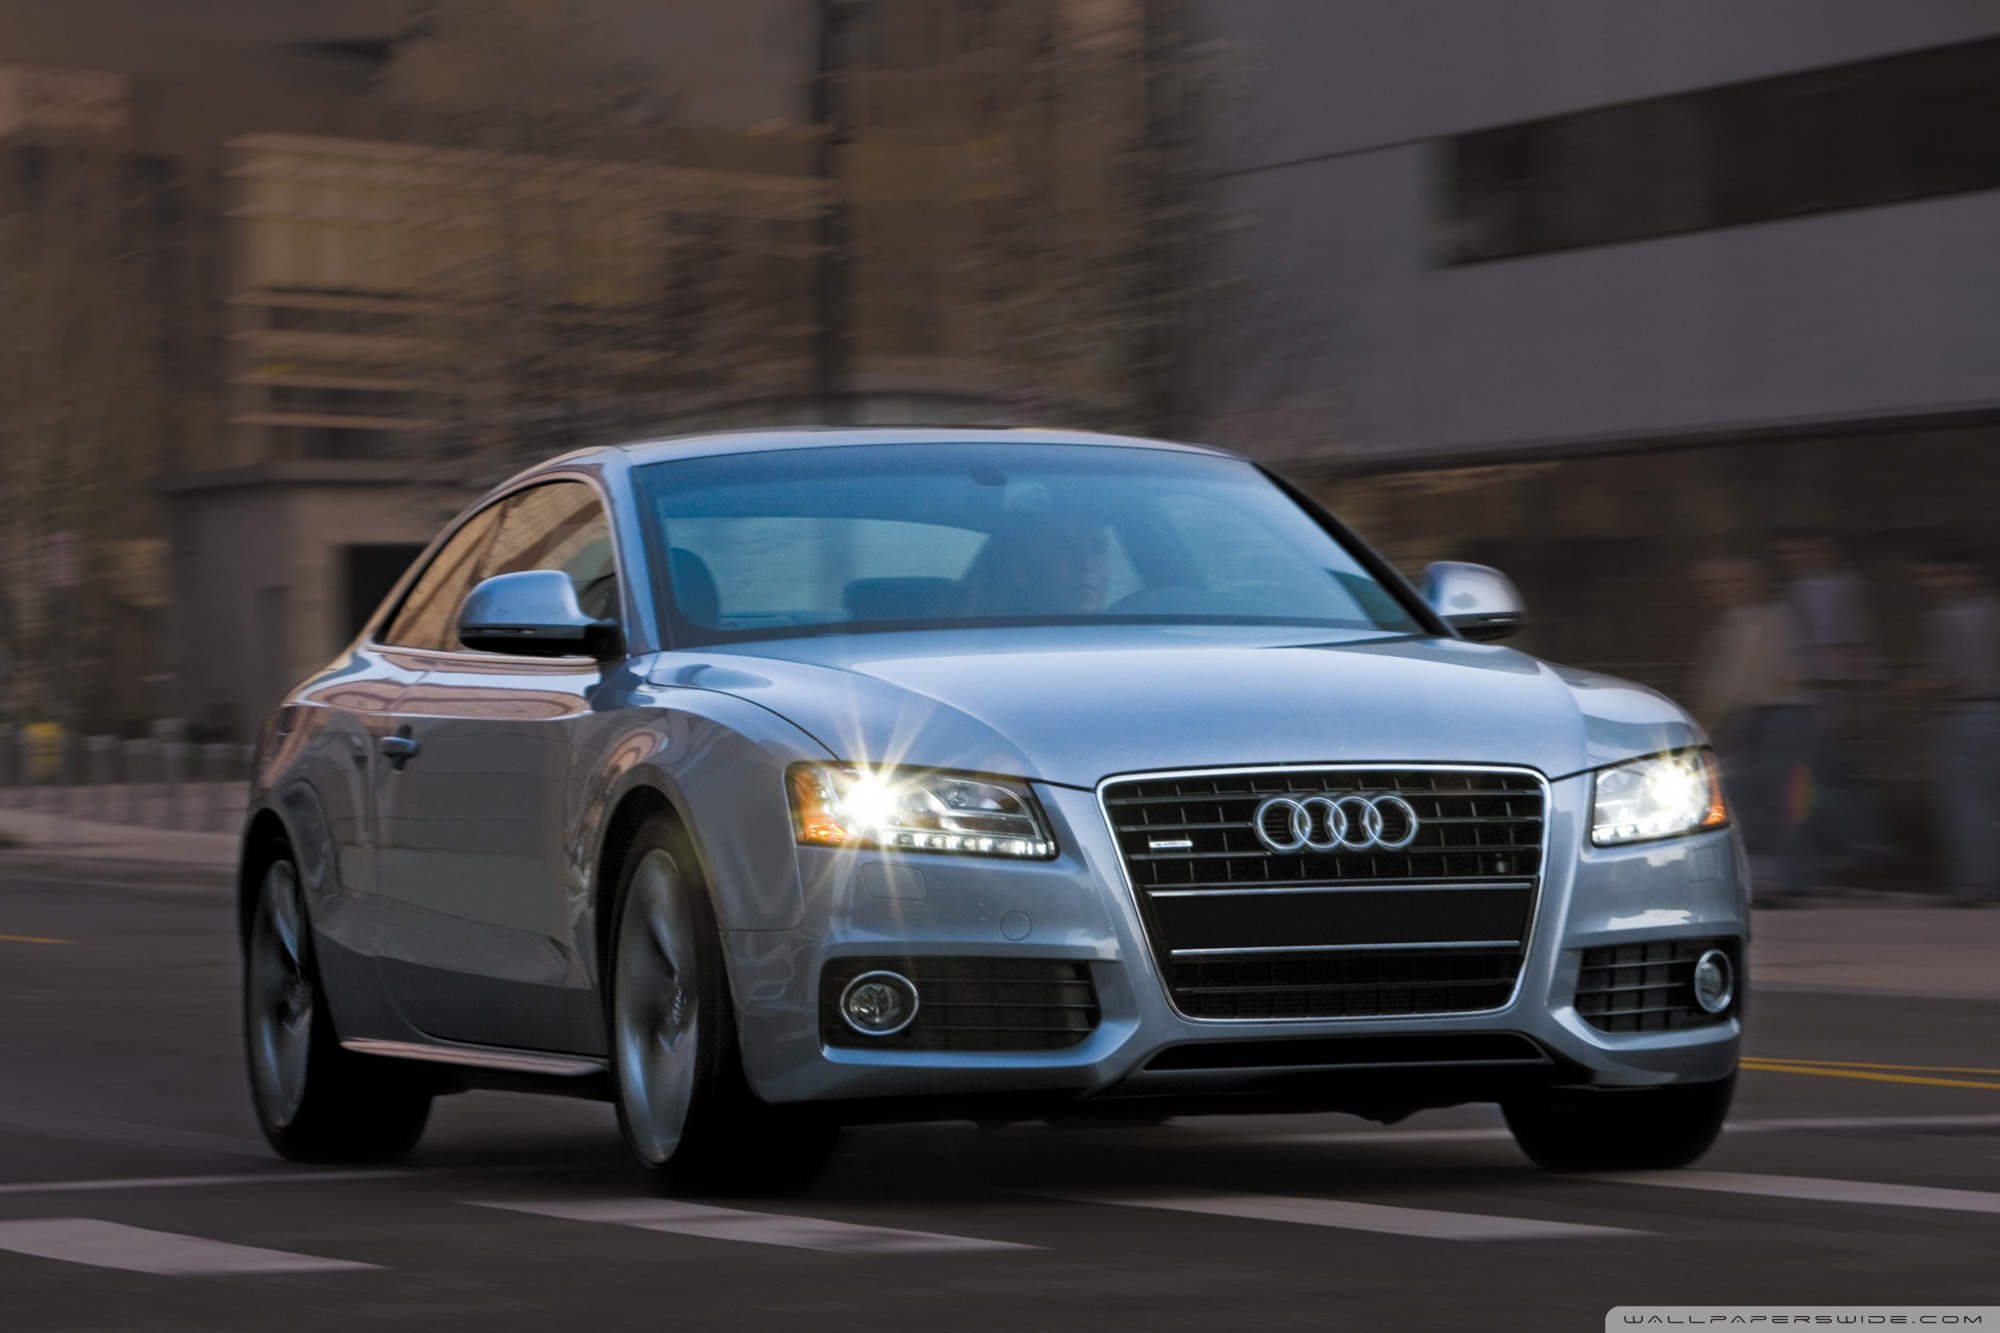 audi a5 3 2 s line coupe us specifications 2 wallpapers